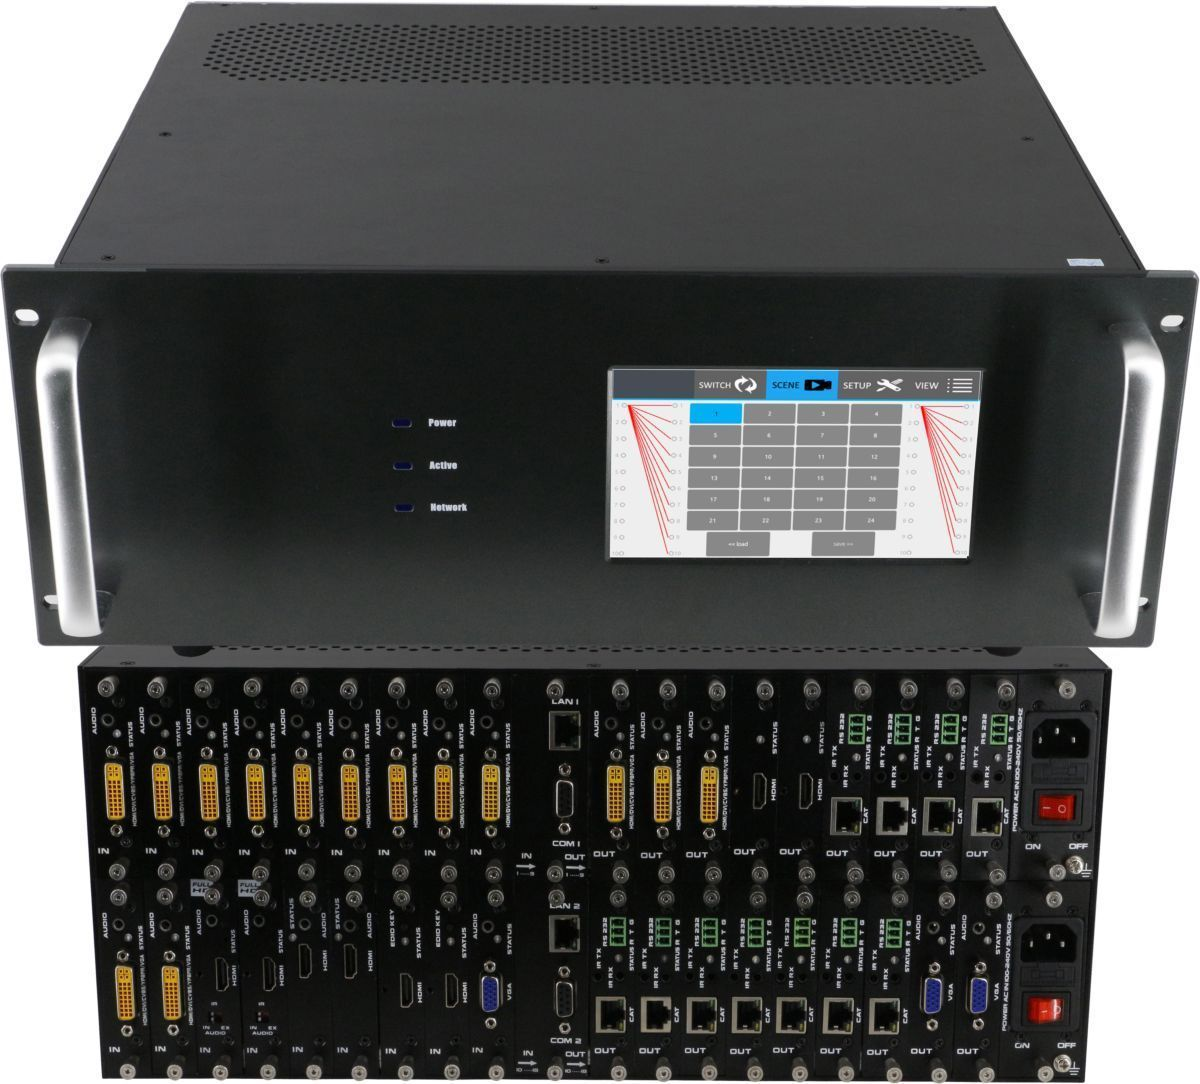 4K 18x12 HDMI Matrix Switcher with Color Touchscreen